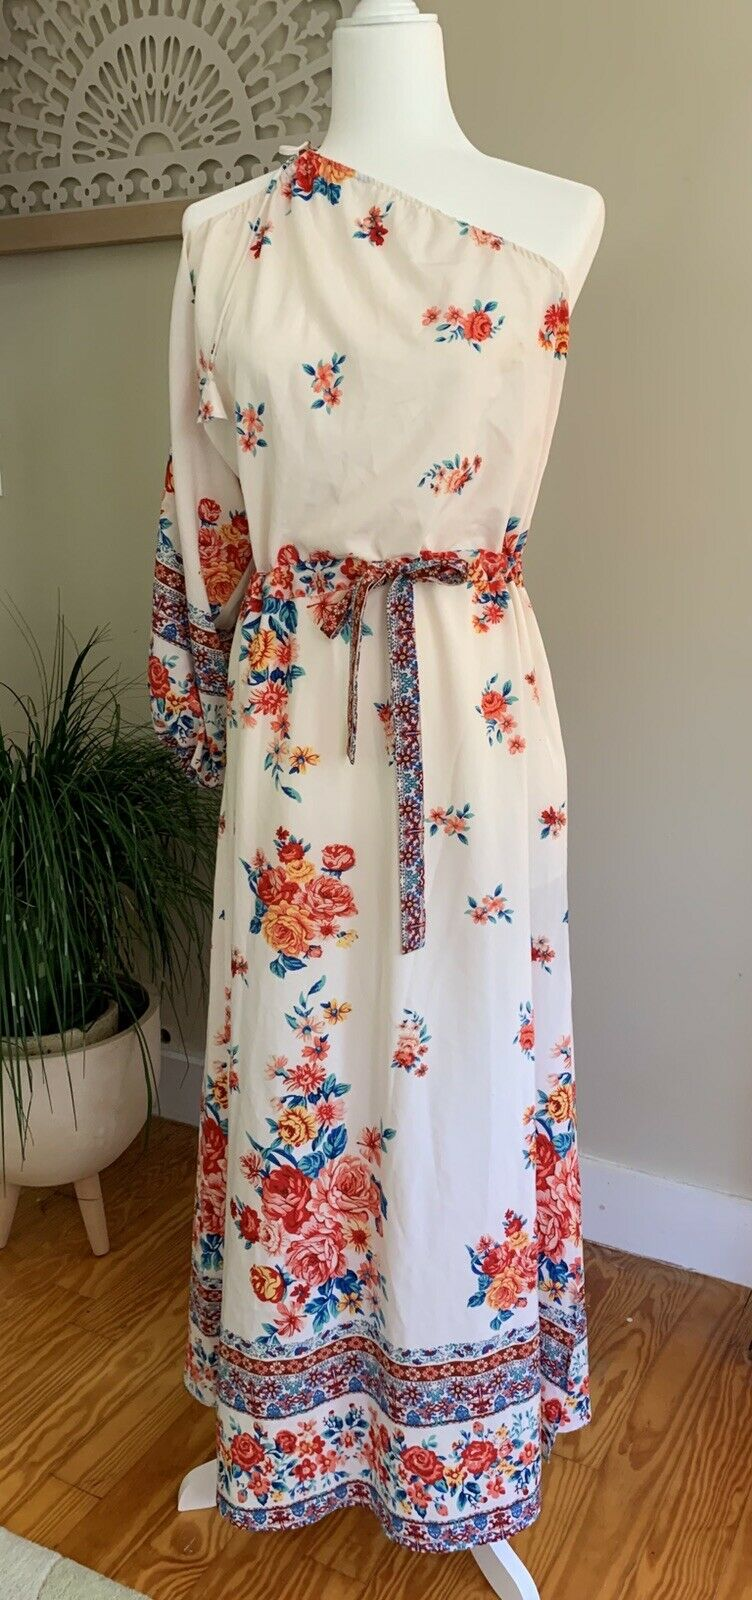 Catalina Dress in Floral MISA Los Angeles Sz S - image 3